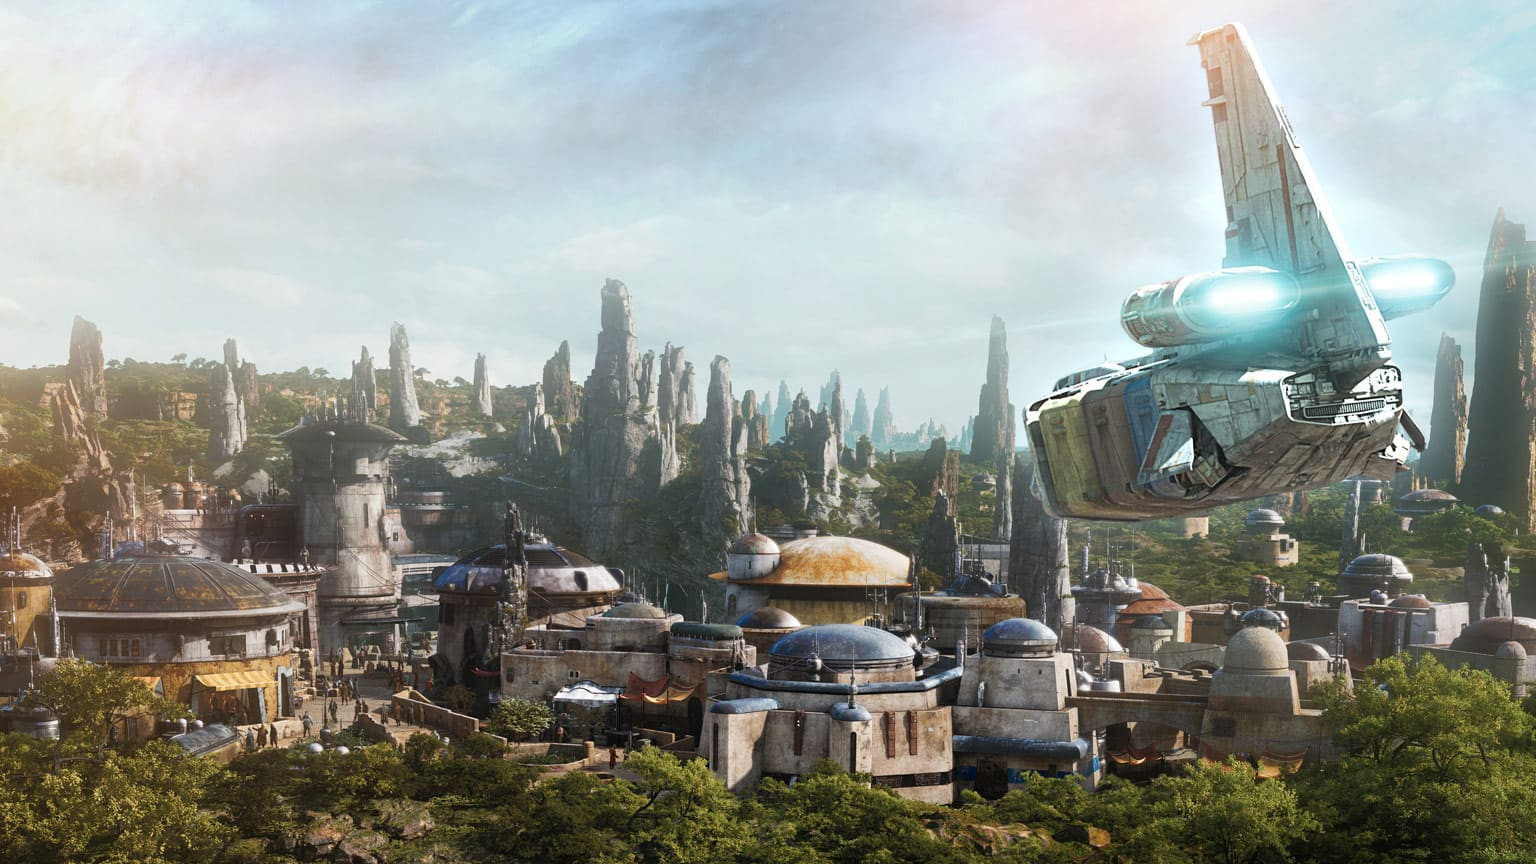 An artist rendering of Black Spire Outpost on the Planet Batuu, part of Star Wars: Galaxy's Edge